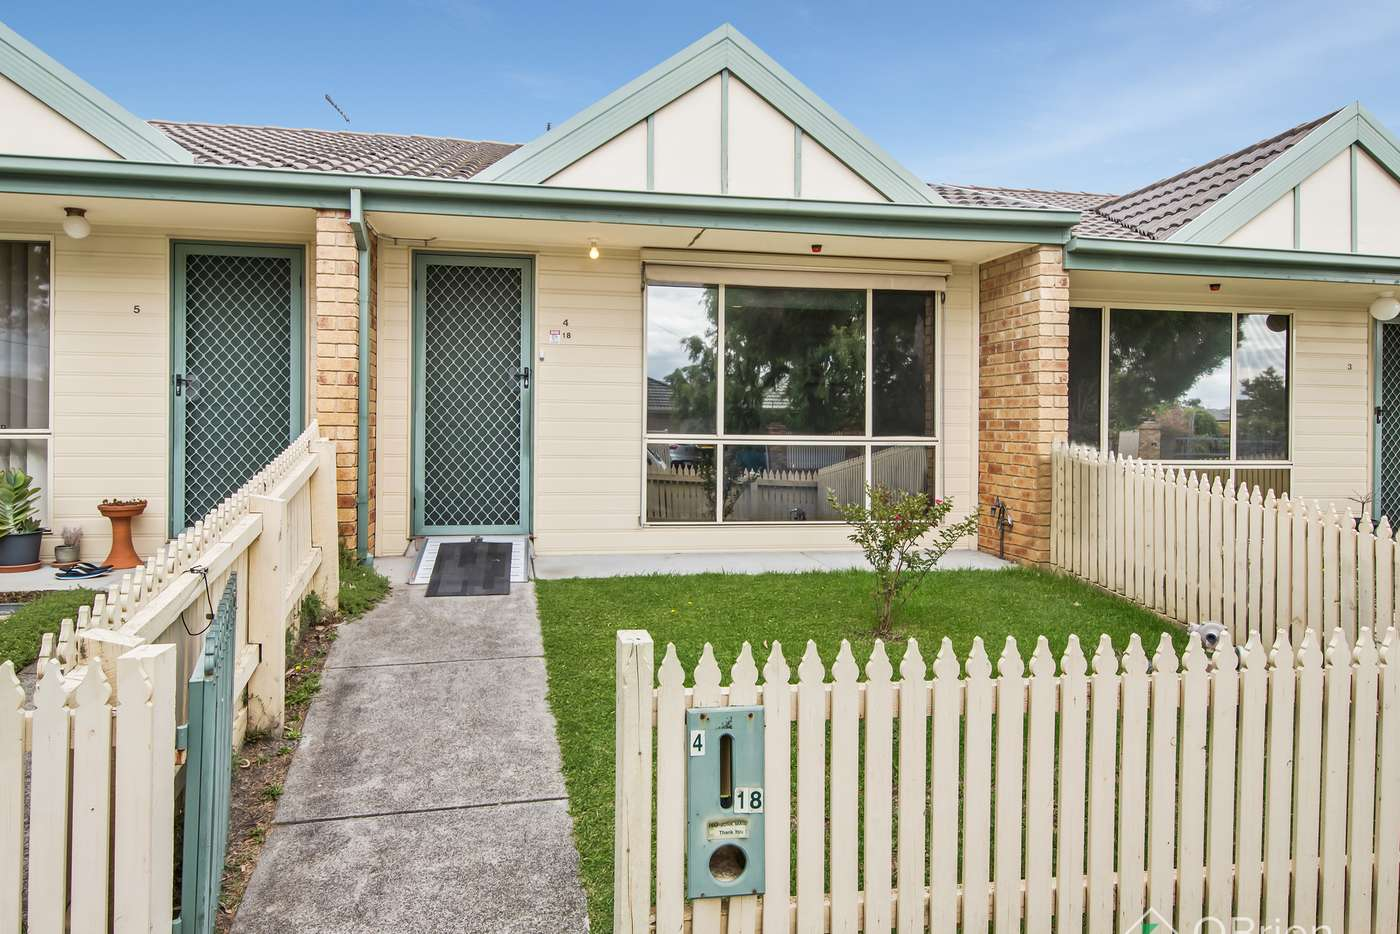 Main view of Homely unit listing, 4/18 Reservoir Road, Frankston VIC 3199